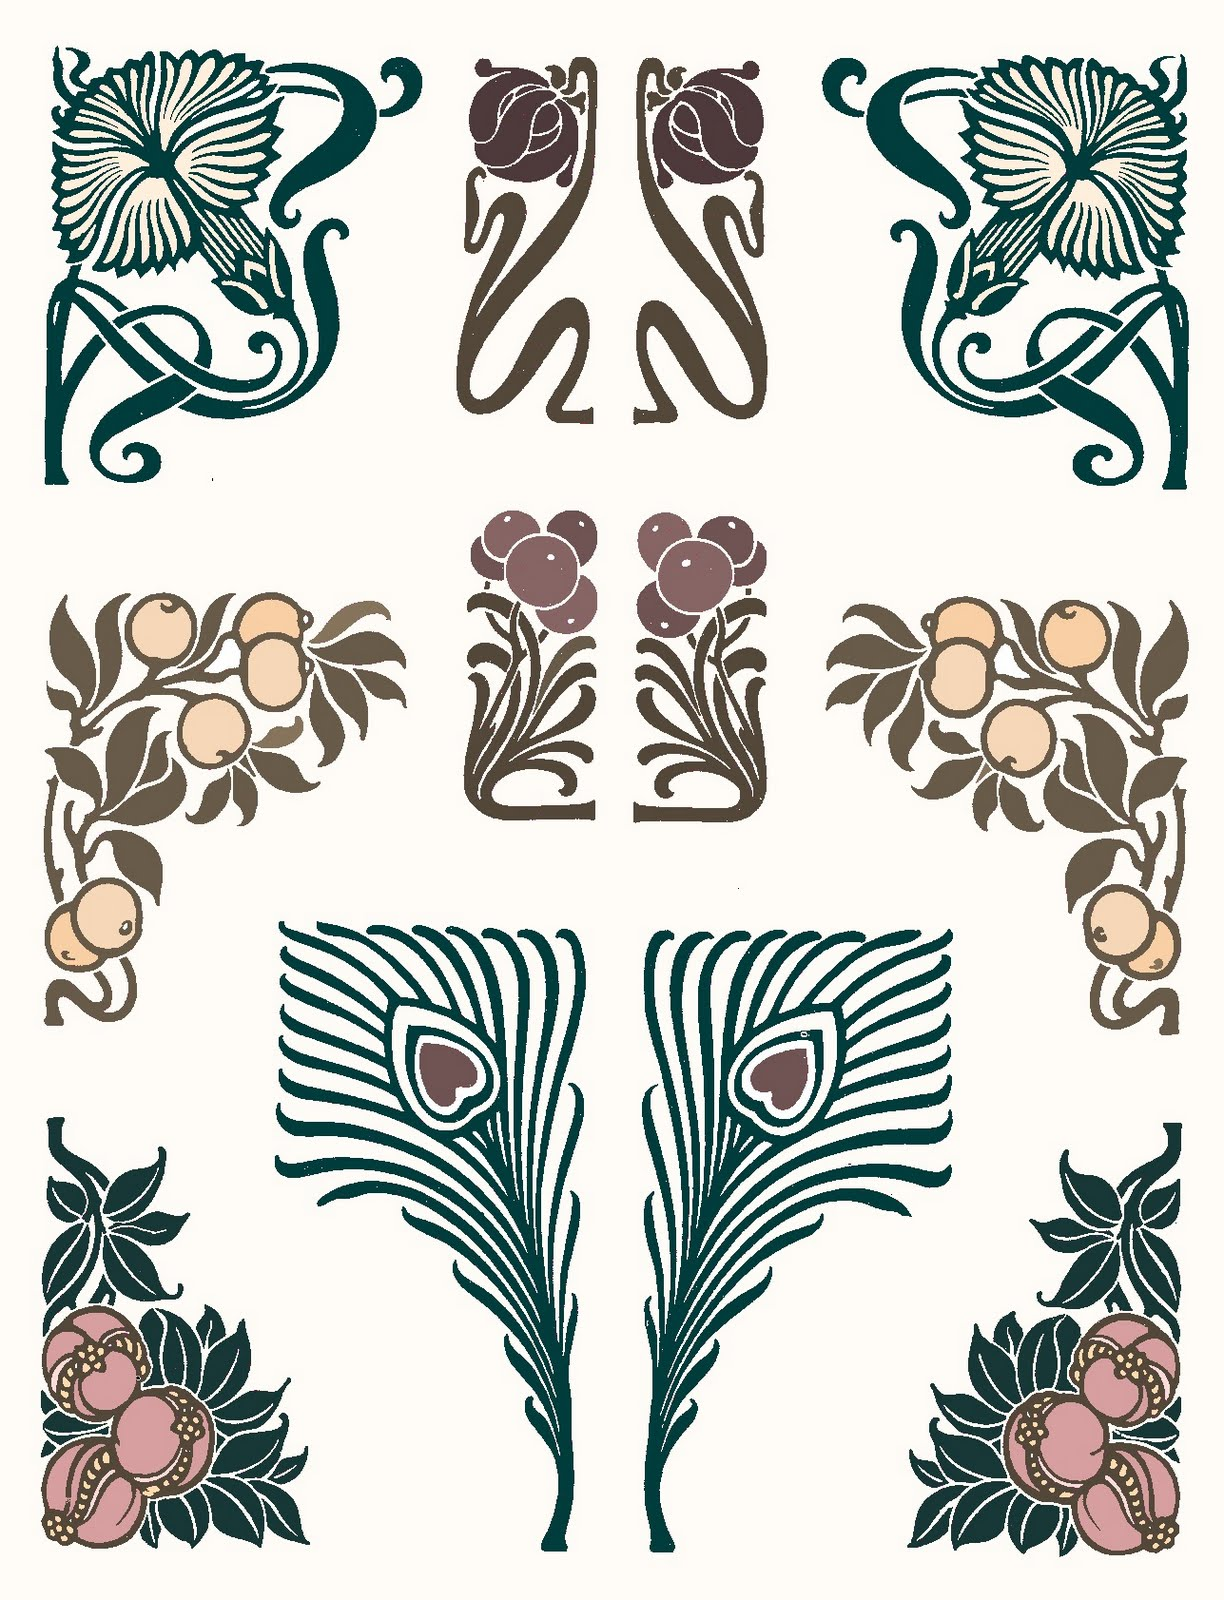 Art deco tattoo on pinterest art nouveau tattoo nouveau tattoo and art - Art nouveau art deco ...